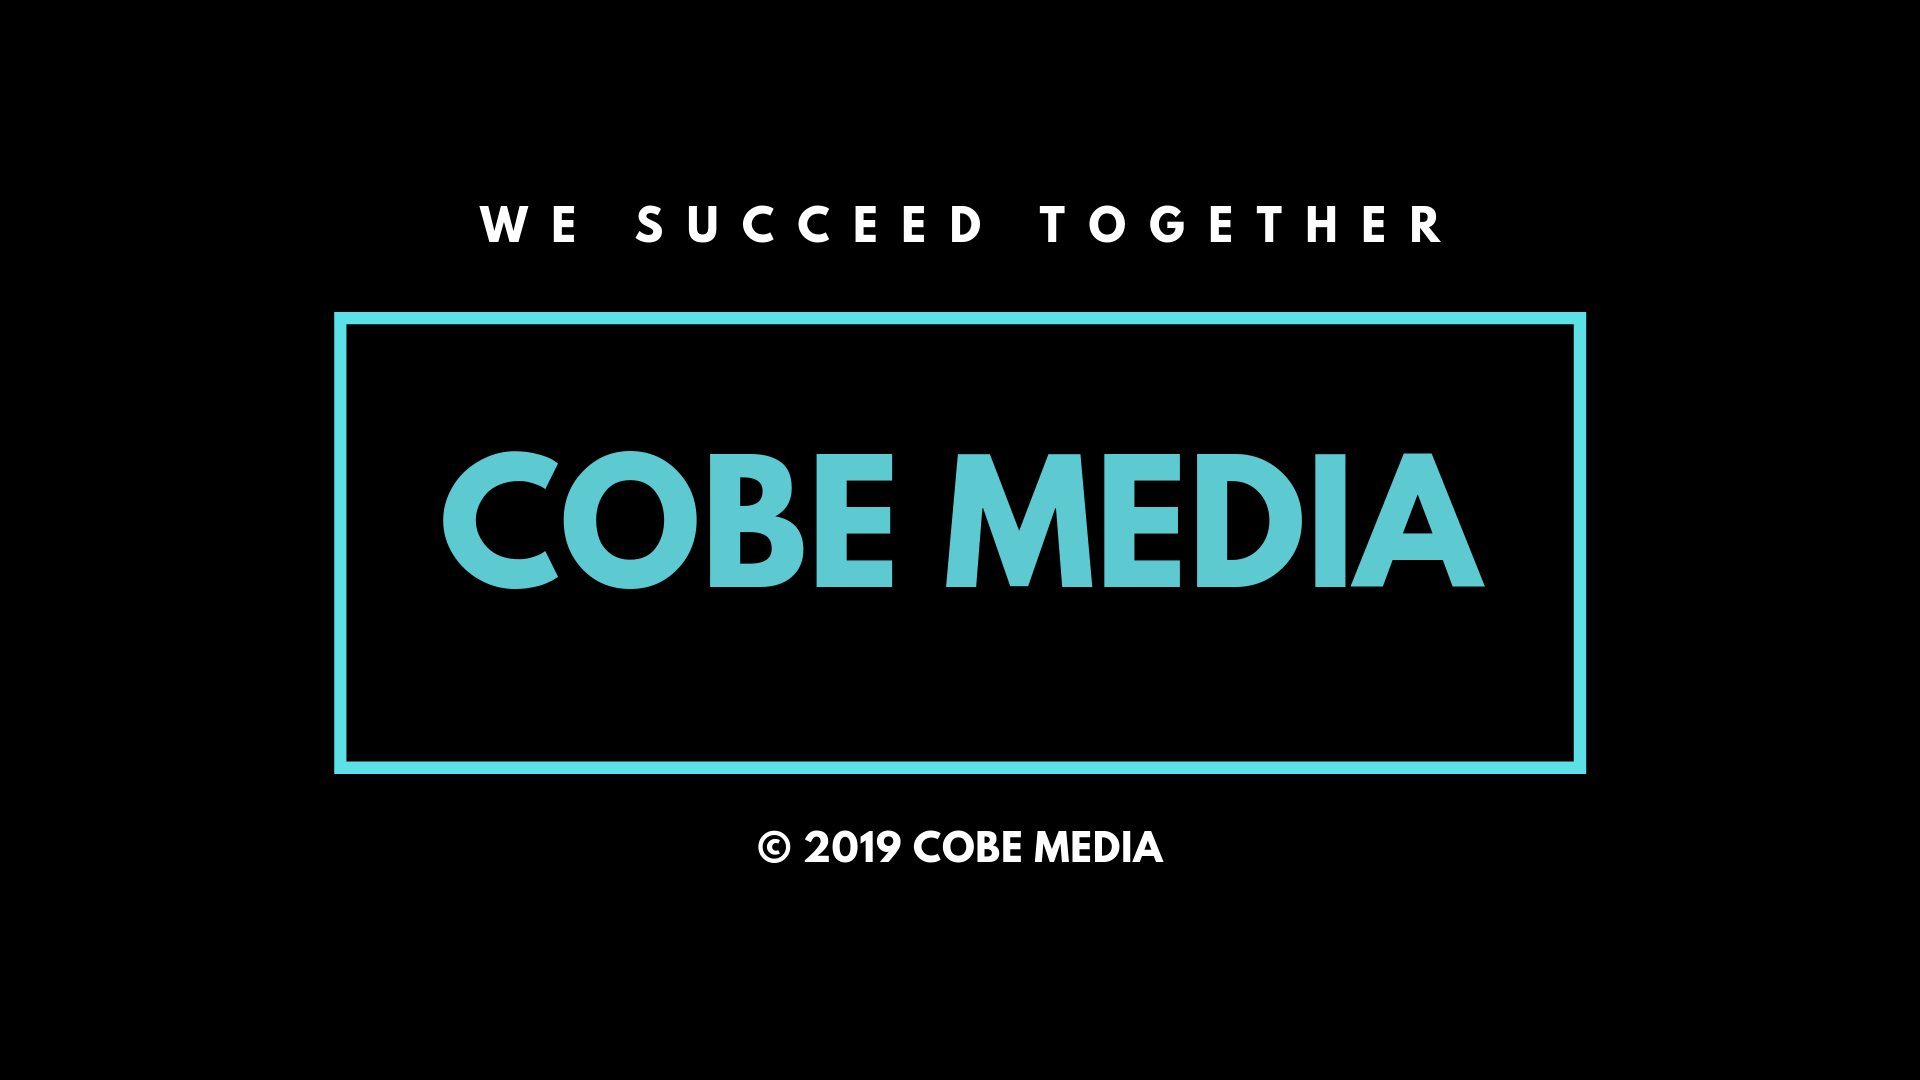 Cobe Media lets succeed together marketing agency near me New York NY